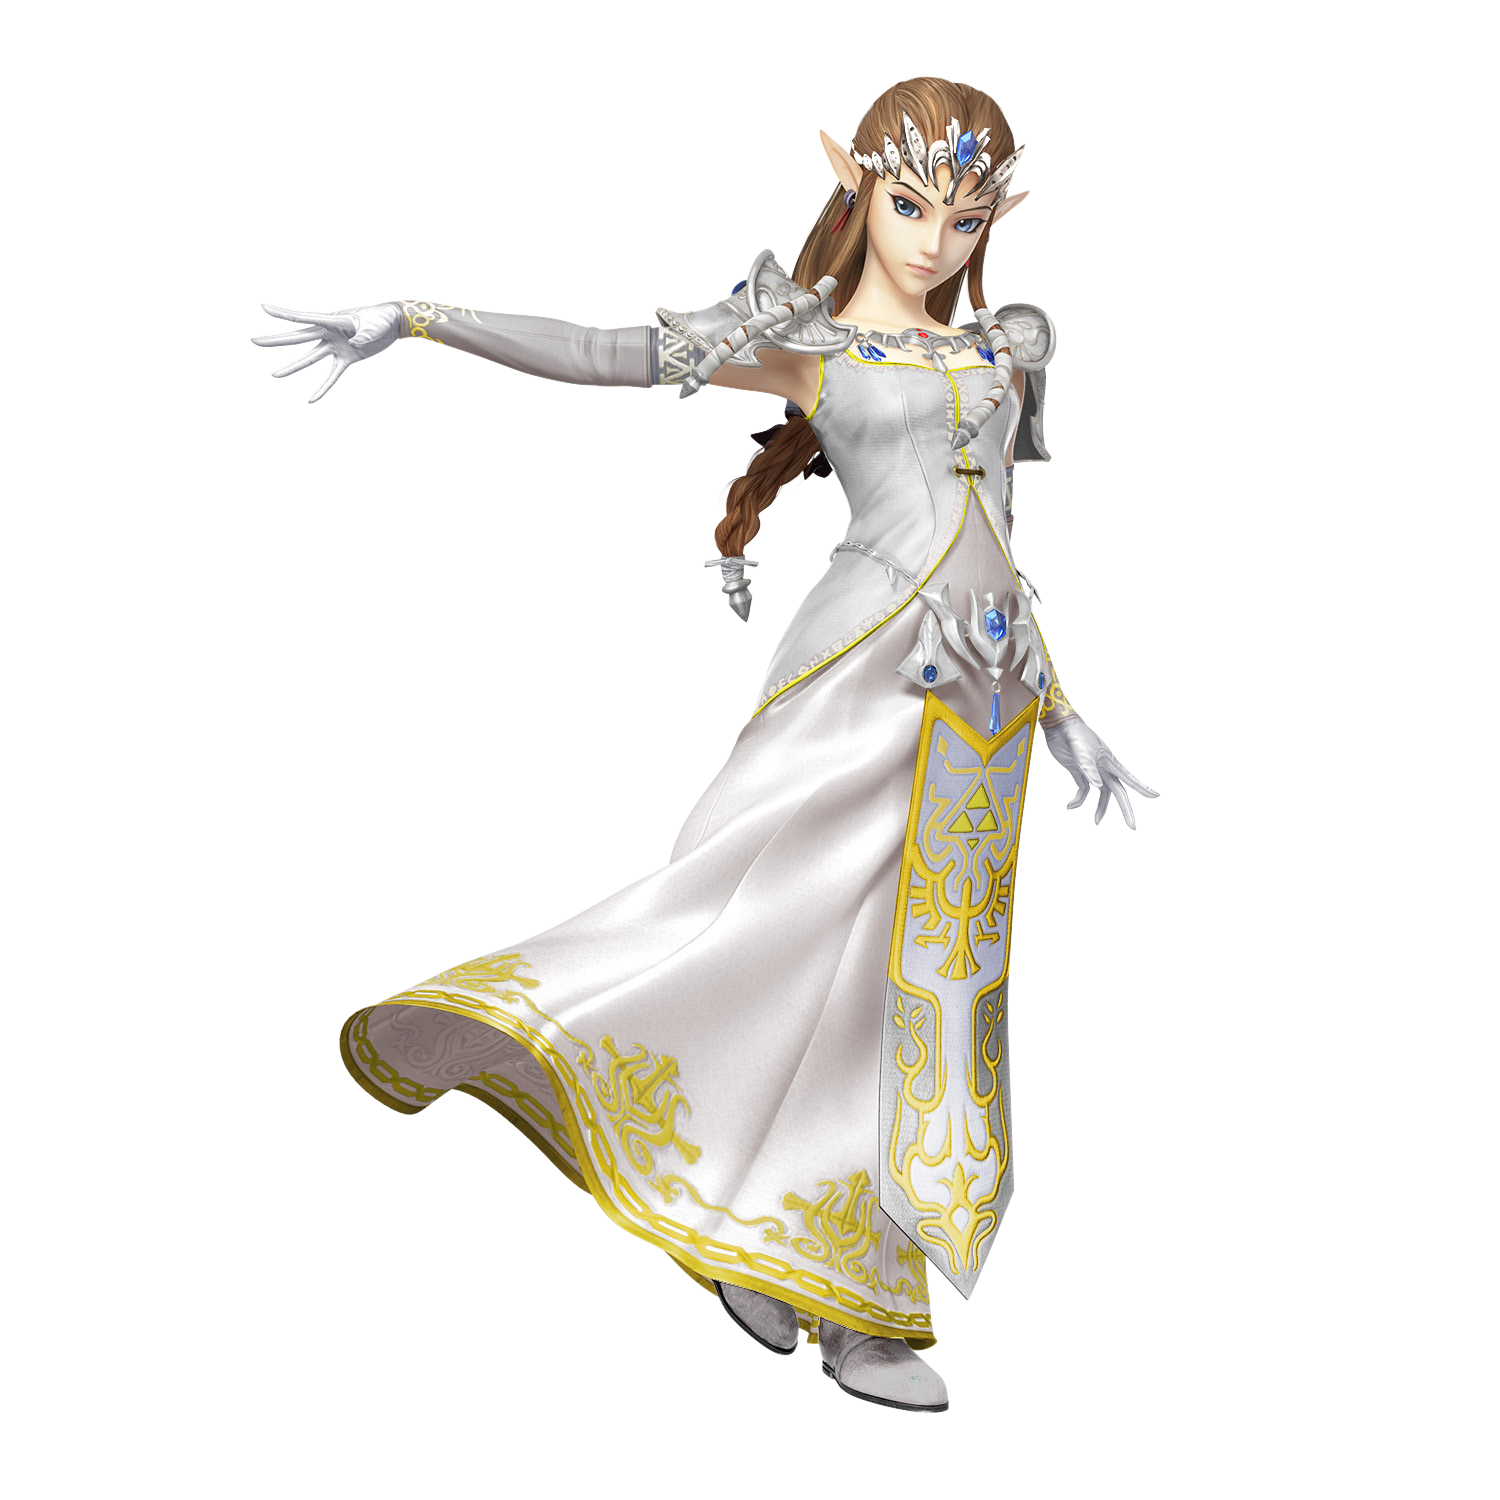 Smash 4 costumes png. High quality clean transparent